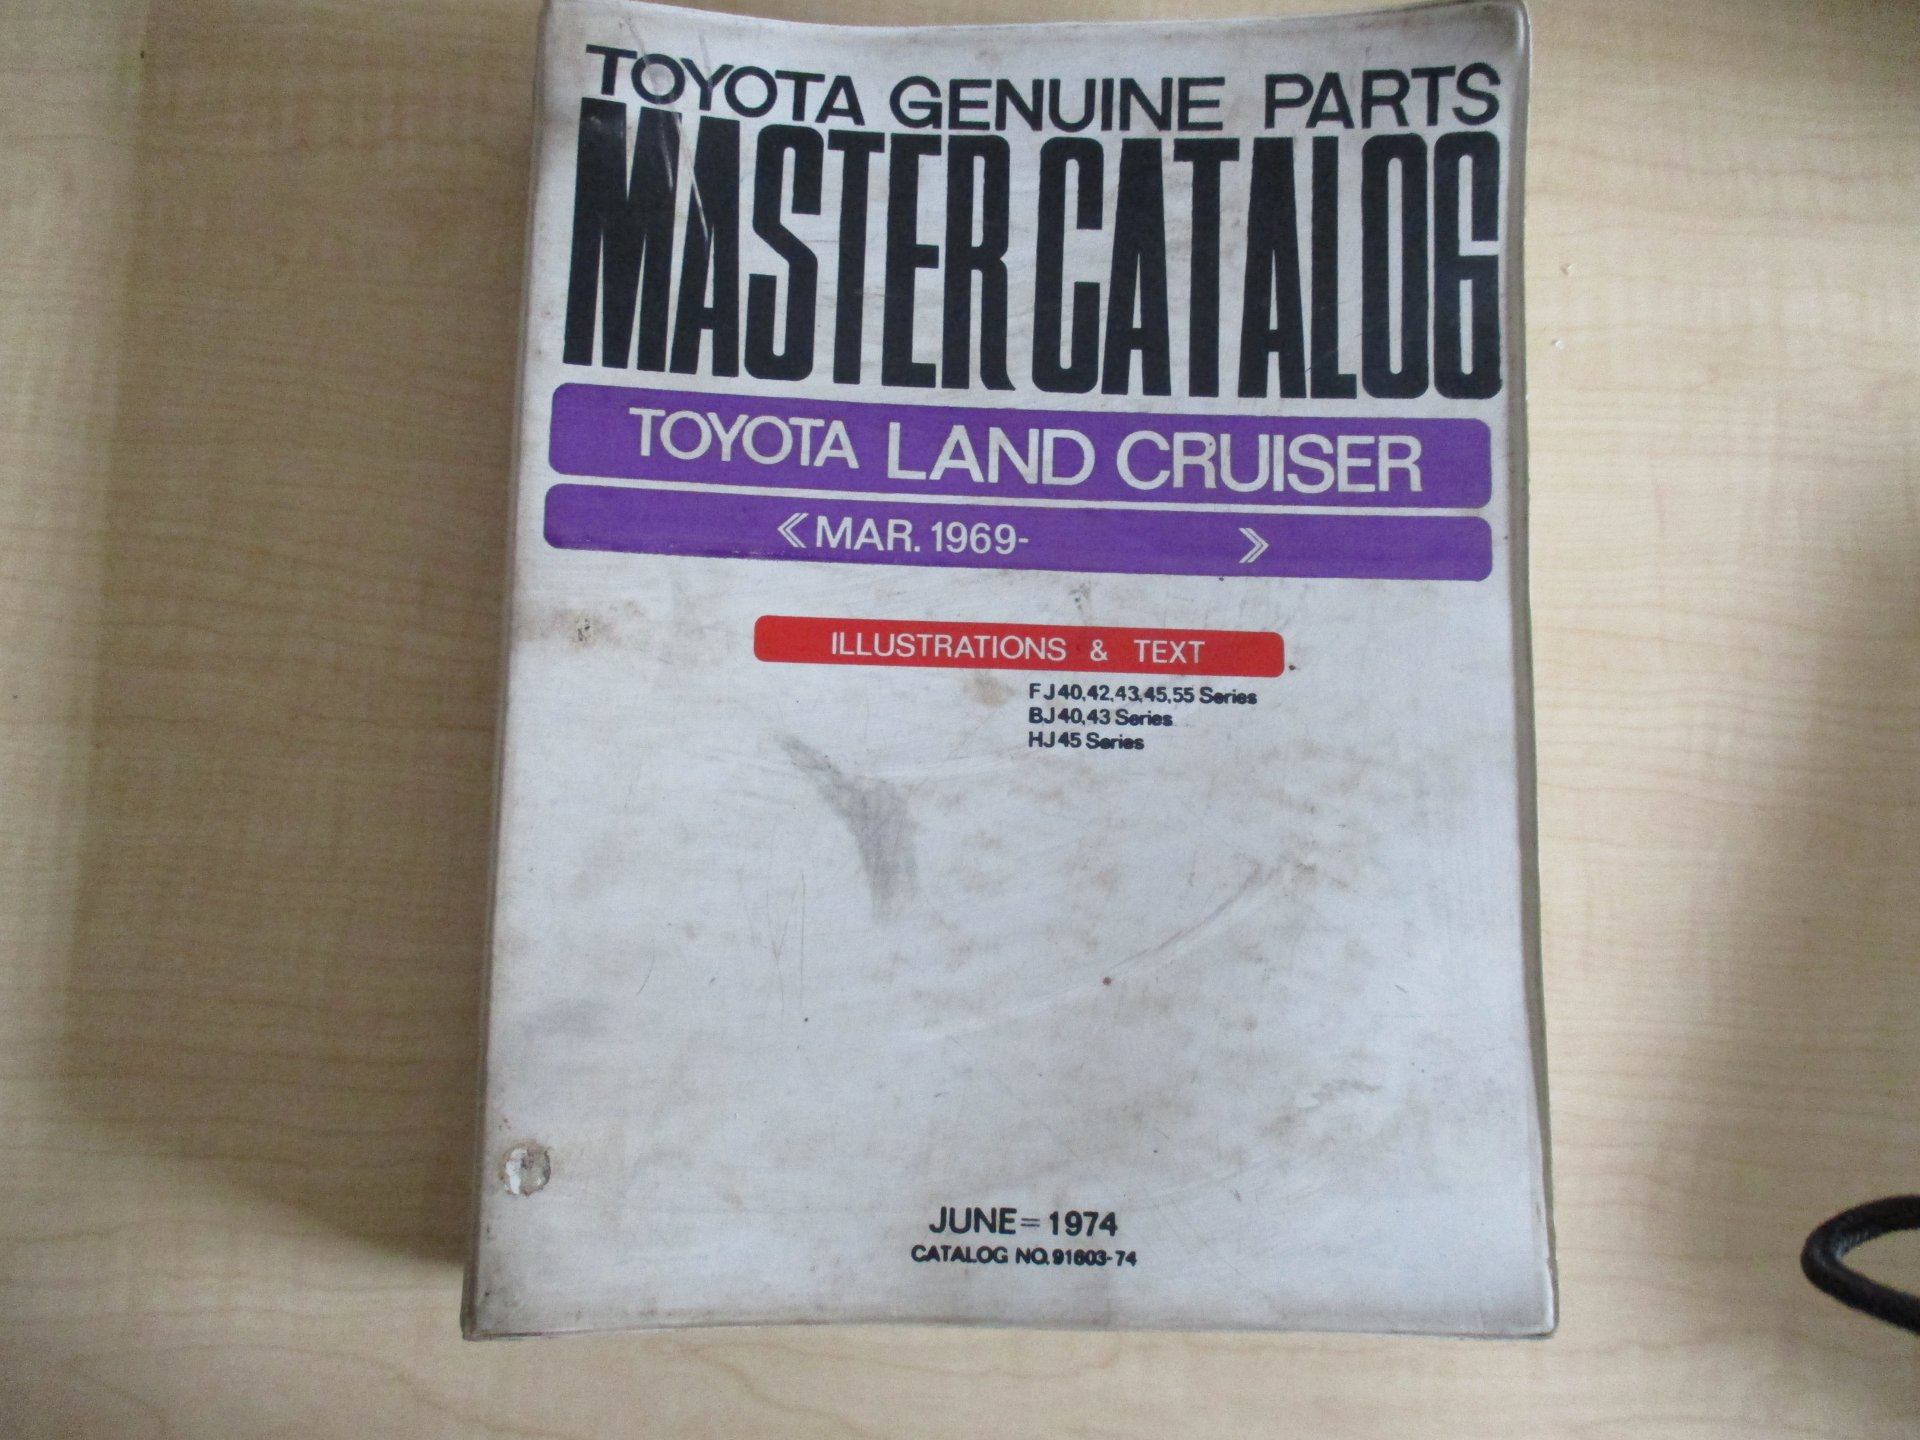 ad-assets_2019-08_Toyota LC Parts.JPG